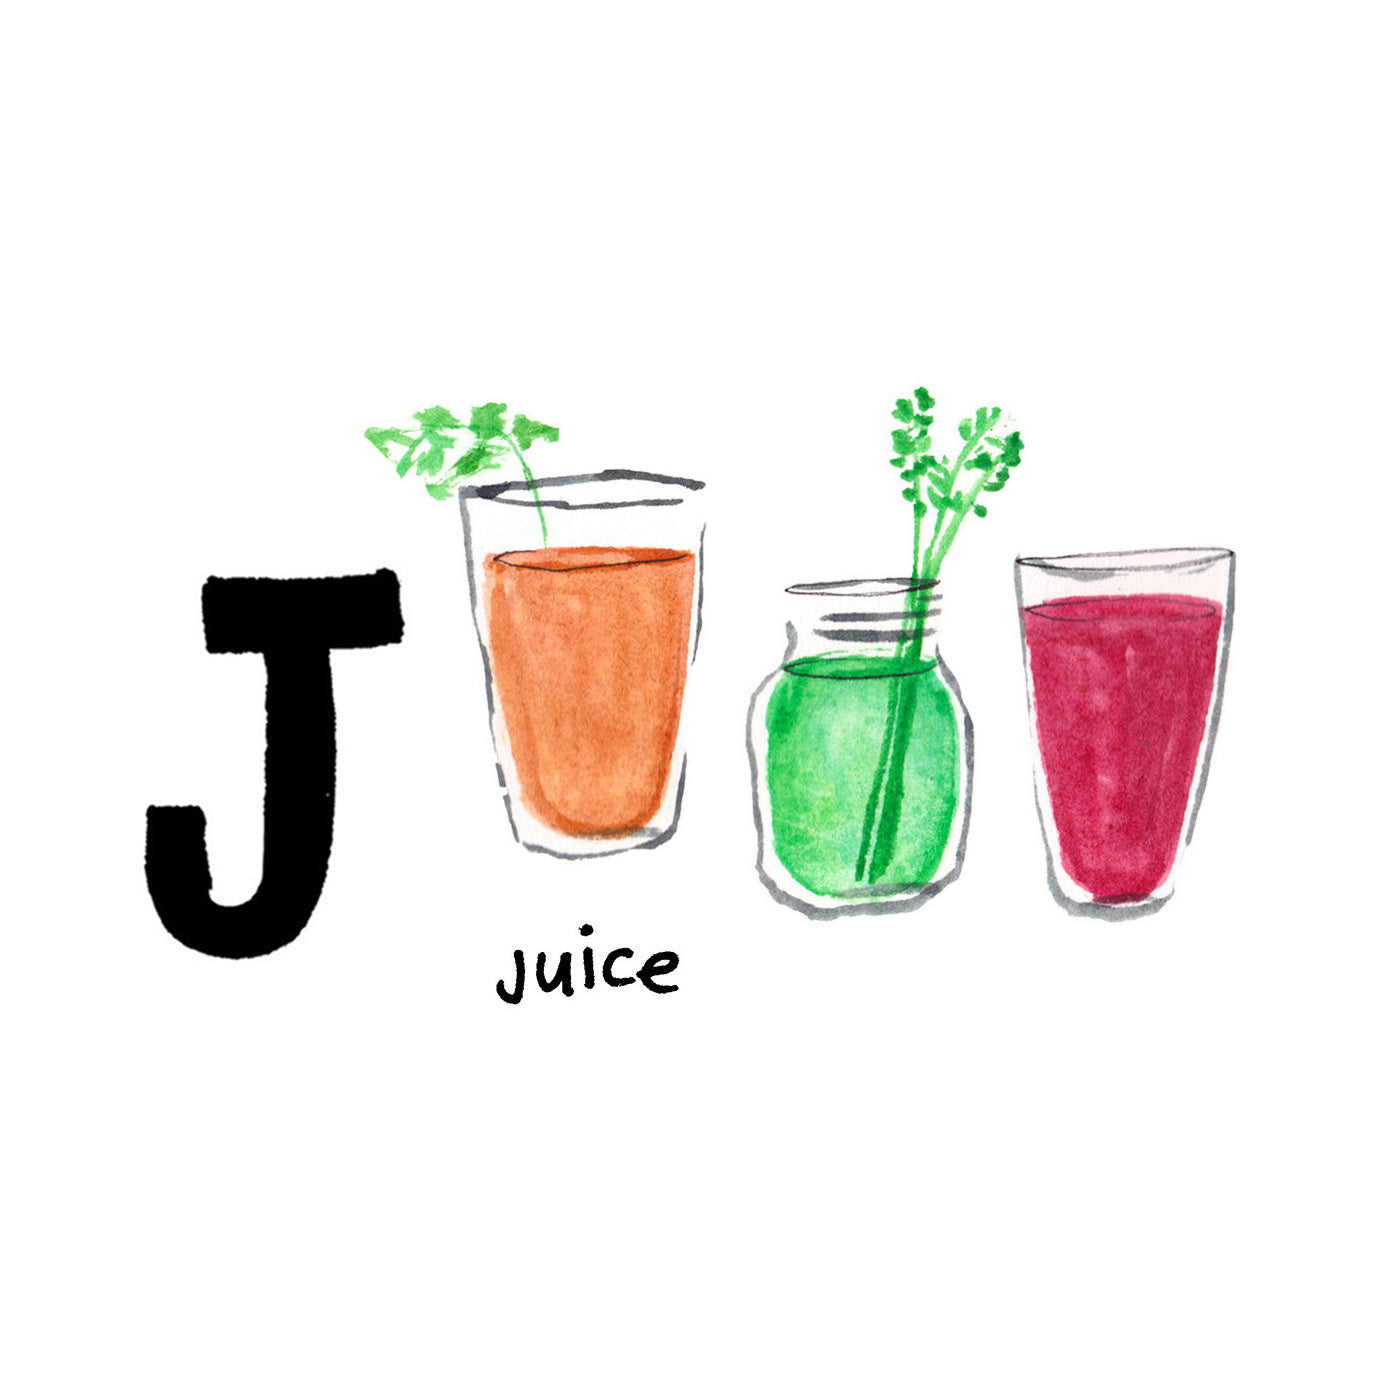 J is for Juice. California's residents are wildly enthusiastic about their health conscious lifestyle. Juicing and juice cleanses have been popular since the 1970s.